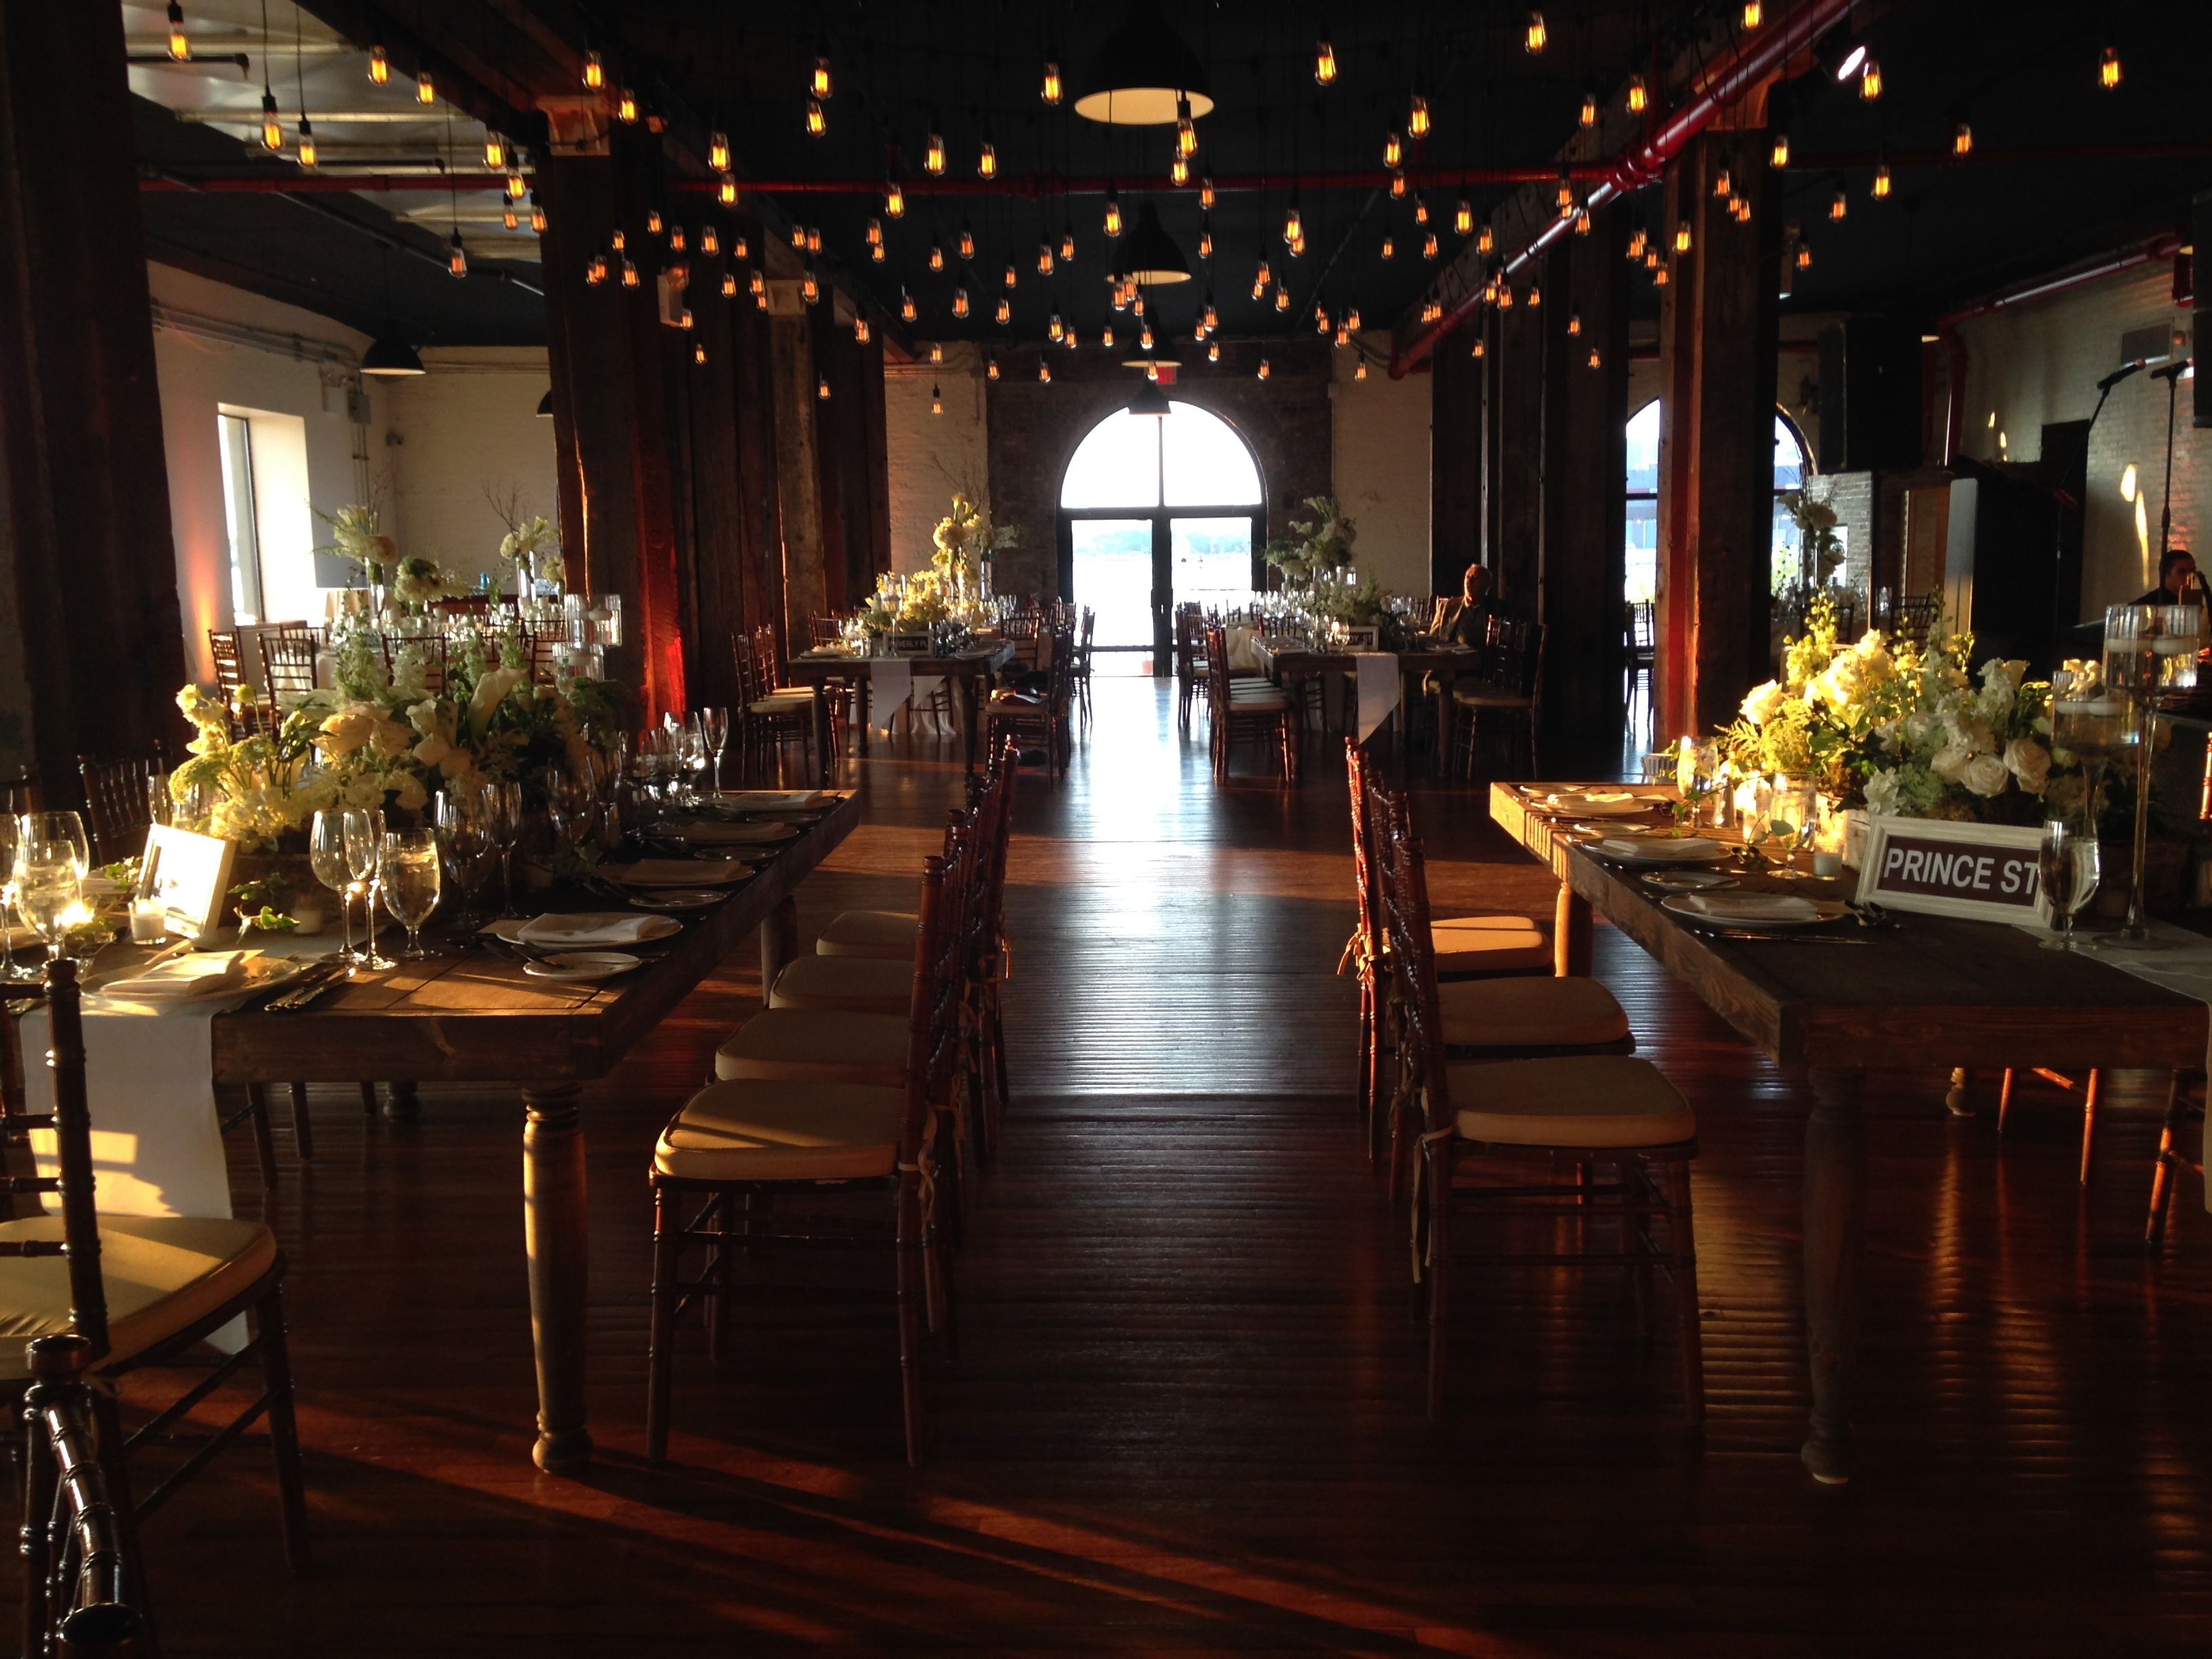 The Liberty Warehouse Decor and Lighting by Pegasus